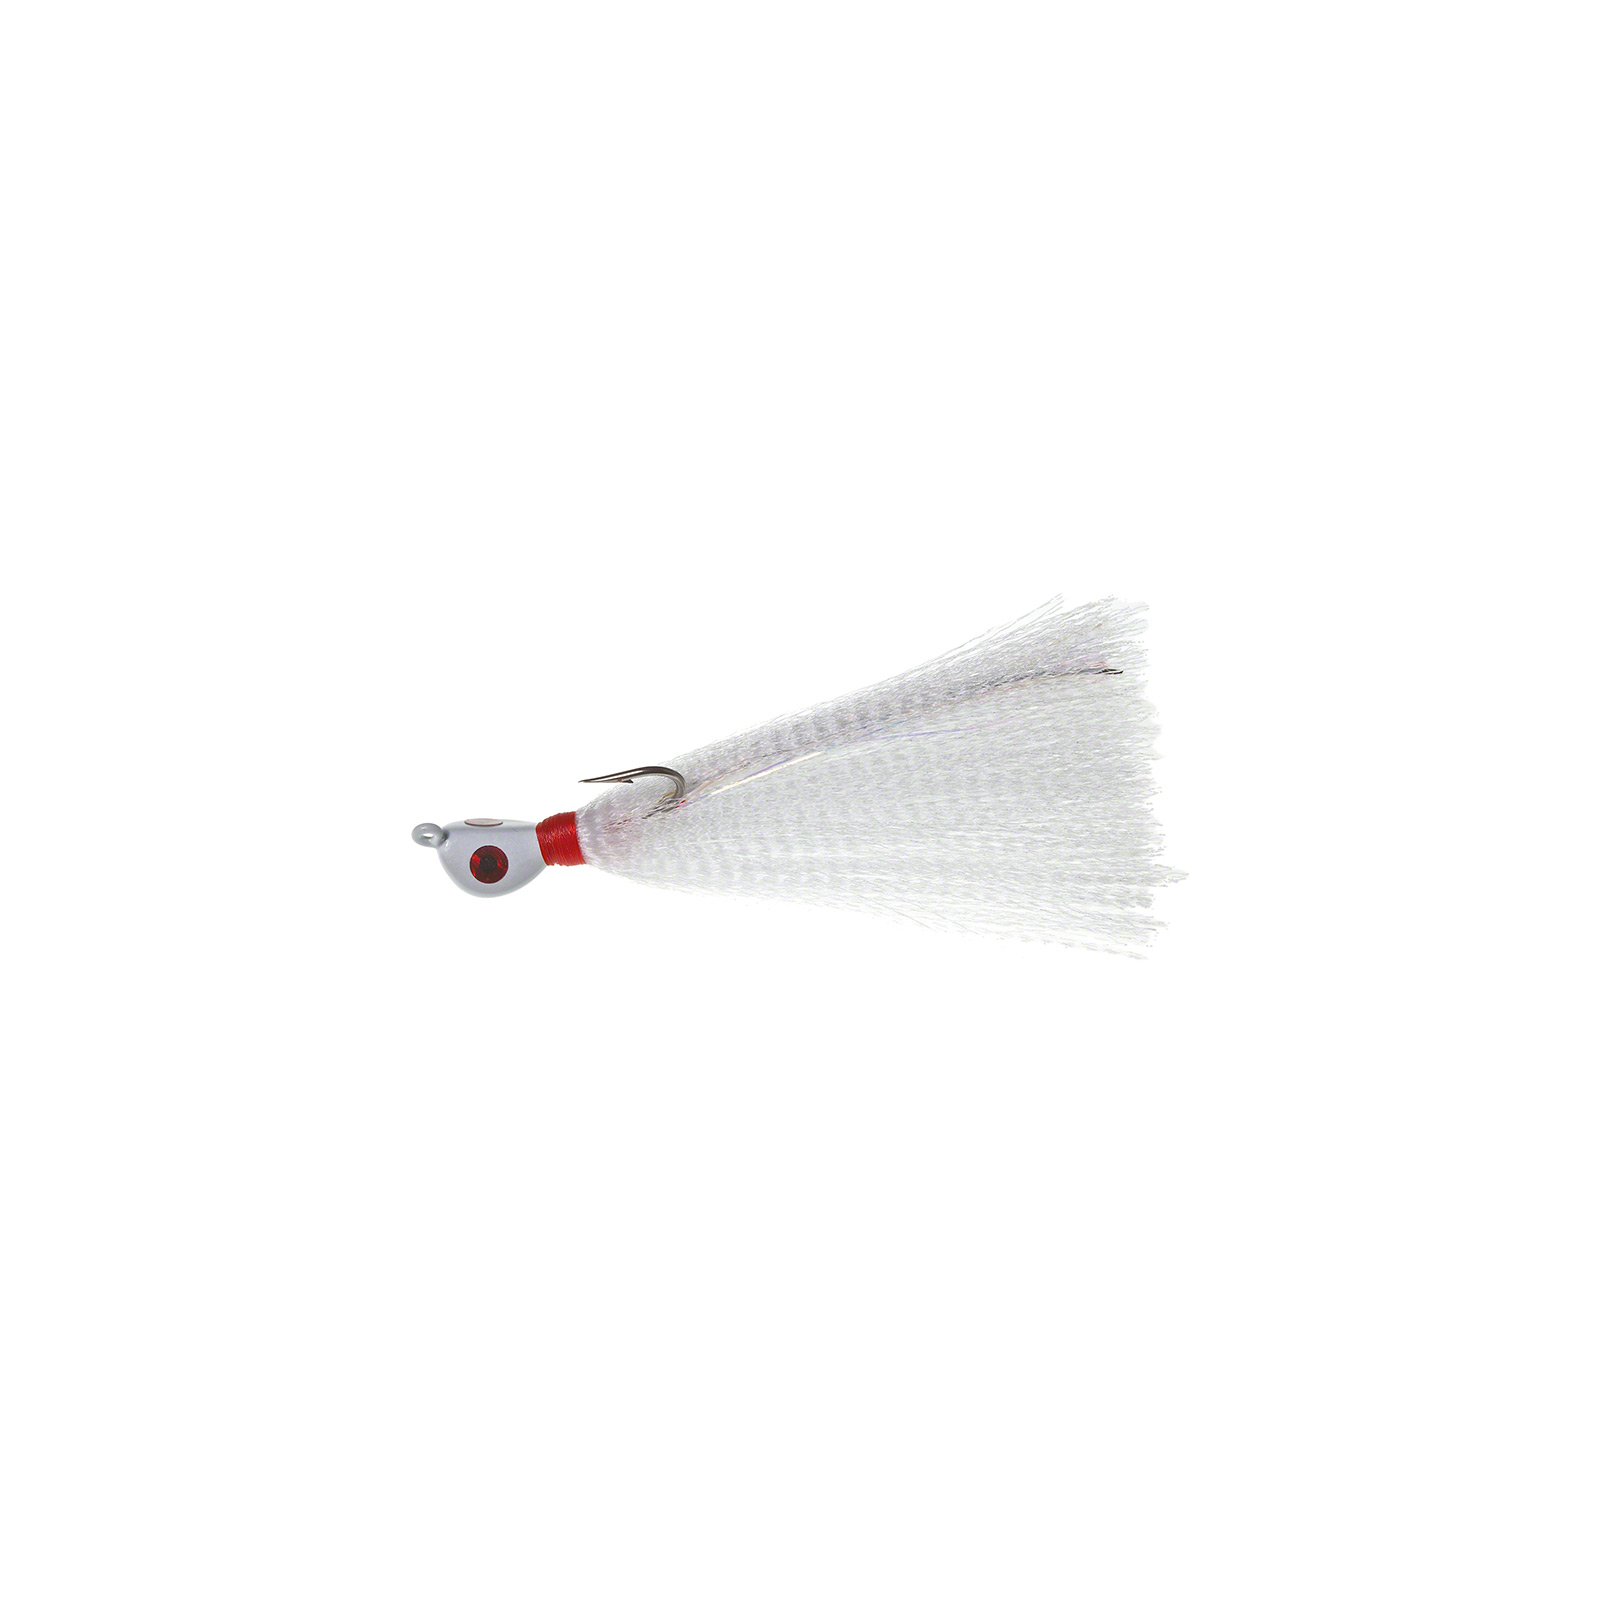 HookUp XT Bucktail Jig 2-1 2oz Wht Red Wht w #6 0 Duratin H 6 Pack, 148-03 by Hookup